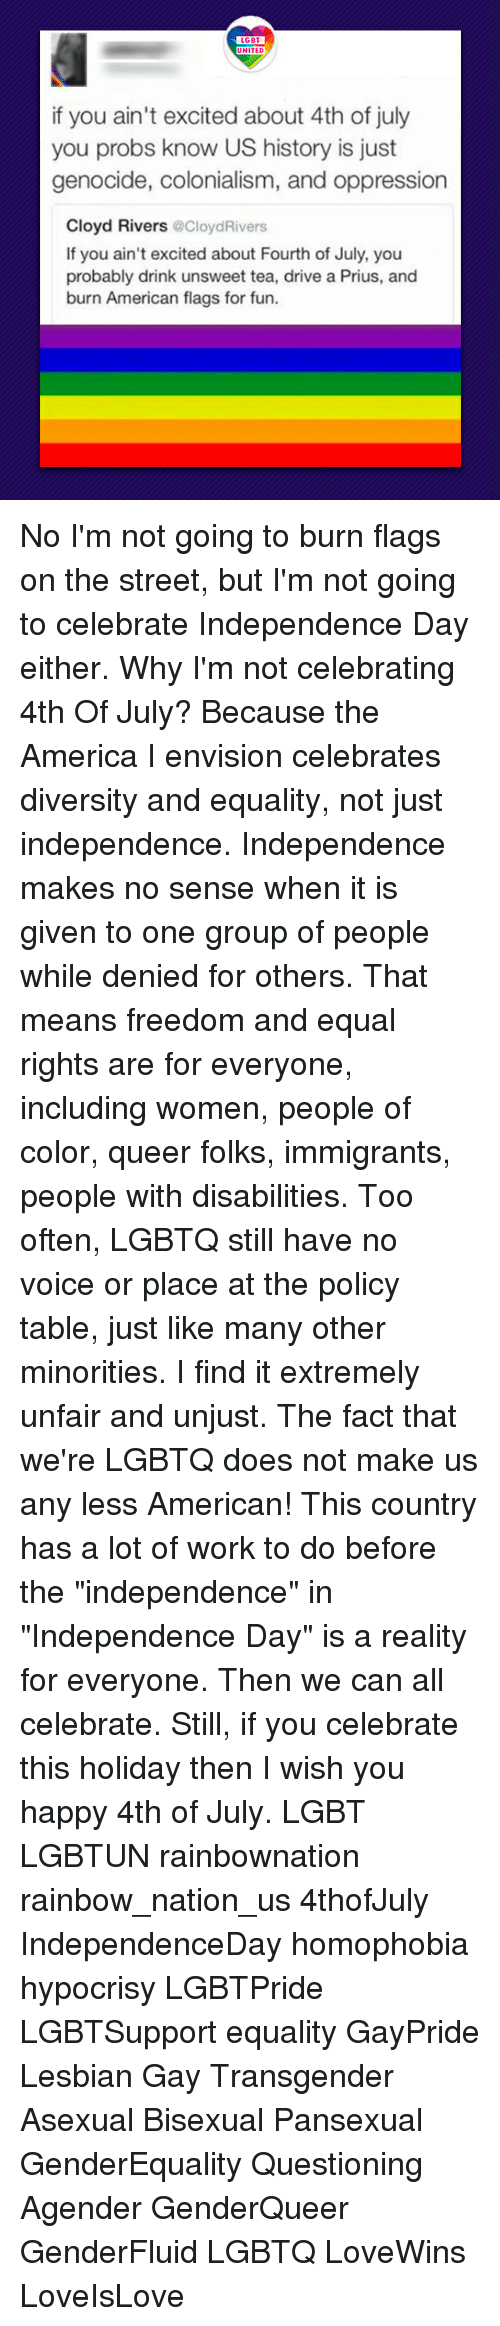 """Equalism: LGBT  if you ain't excited about 4th of july  you probs know US history is just  genocide, colonialism, and oppression  Cloyd Rivers @CloydRivers  If you ain't excited about Fourth of July, you  probably drink unsweet tea, drive a Prius, and  burn American flags for fun. No I'm not going to burn flags on the street, but I'm not going to celebrate Independence Day either. Why I'm not celebrating 4th Of July? Because the America I envision celebrates diversity and equality, not just independence. Independence makes no sense when it is given to one group of people while denied for others. That means freedom and equal rights are for everyone, including women, people of color, queer folks, immigrants, people with disabilities. Too often, LGBTQ still have no voice or place at the policy table, just like many other minorities. I find it extremely unfair and unjust. The fact that we're LGBTQ does not make us any less American! This country has a lot of work to do before the """"independence"""" in """"Independence Day"""" is a reality for everyone. Then we can all celebrate. Still, if you celebrate this holiday then I wish you happy 4th of July. LGBT LGBTUN rainbownation rainbow_nation_us 4thofJuly IndependenceDay homophobia hypocrisy LGBTPride LGBTSupport equality GayPride Lesbian Gay Transgender Asexual Bisexual Pansexual GenderEquality Questioning Agender GenderQueer GenderFluid LGBTQ LoveWins LoveIsLove"""